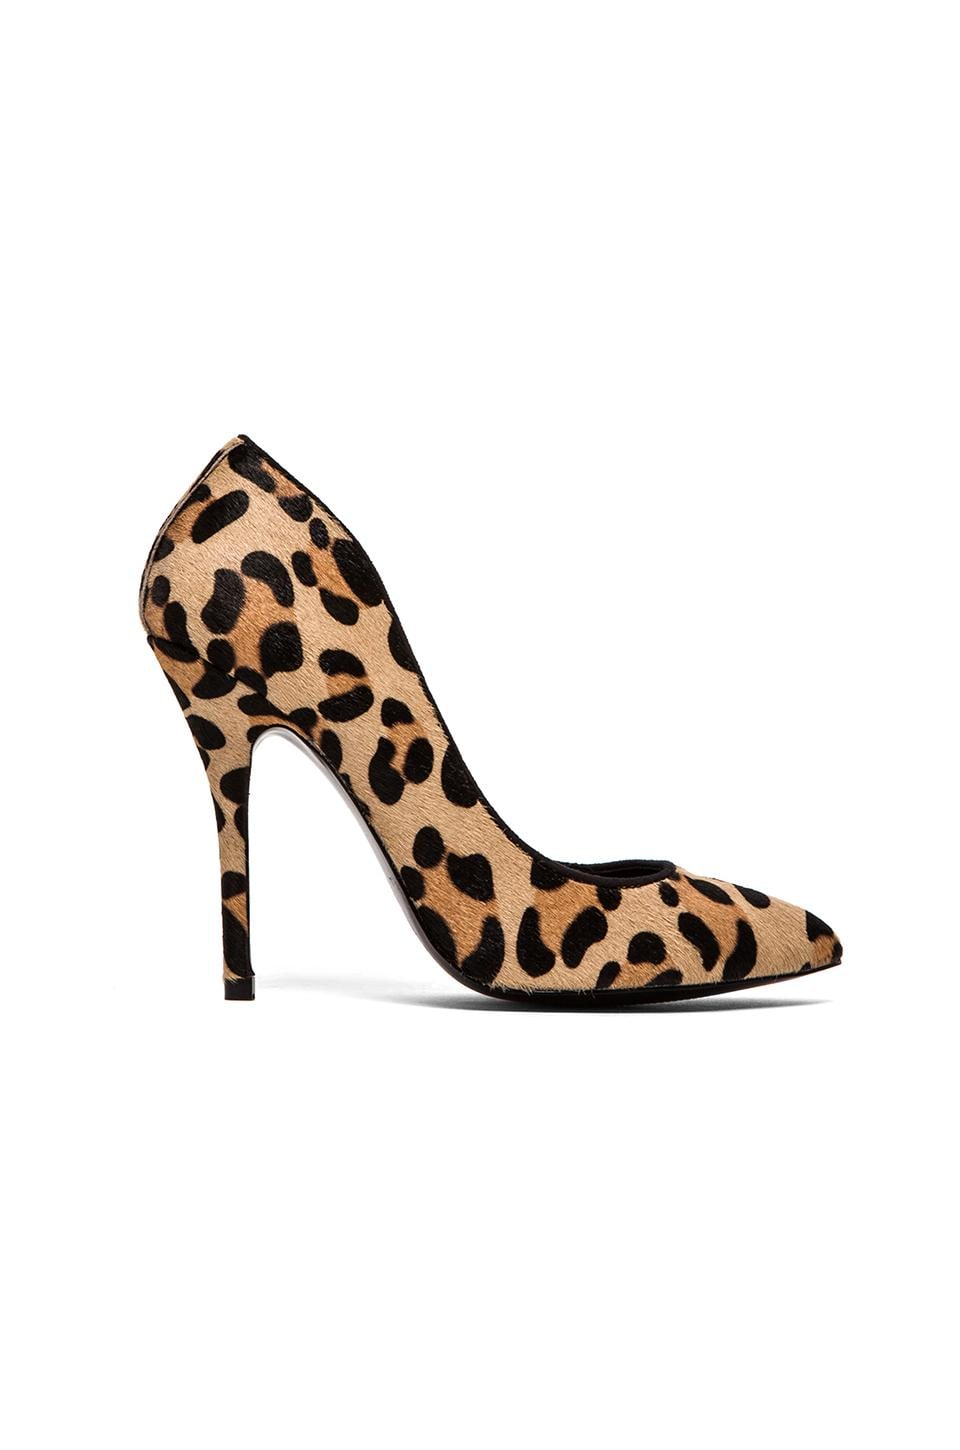 Steve Madden Galleryl Pump with Calf Fur in Leopard